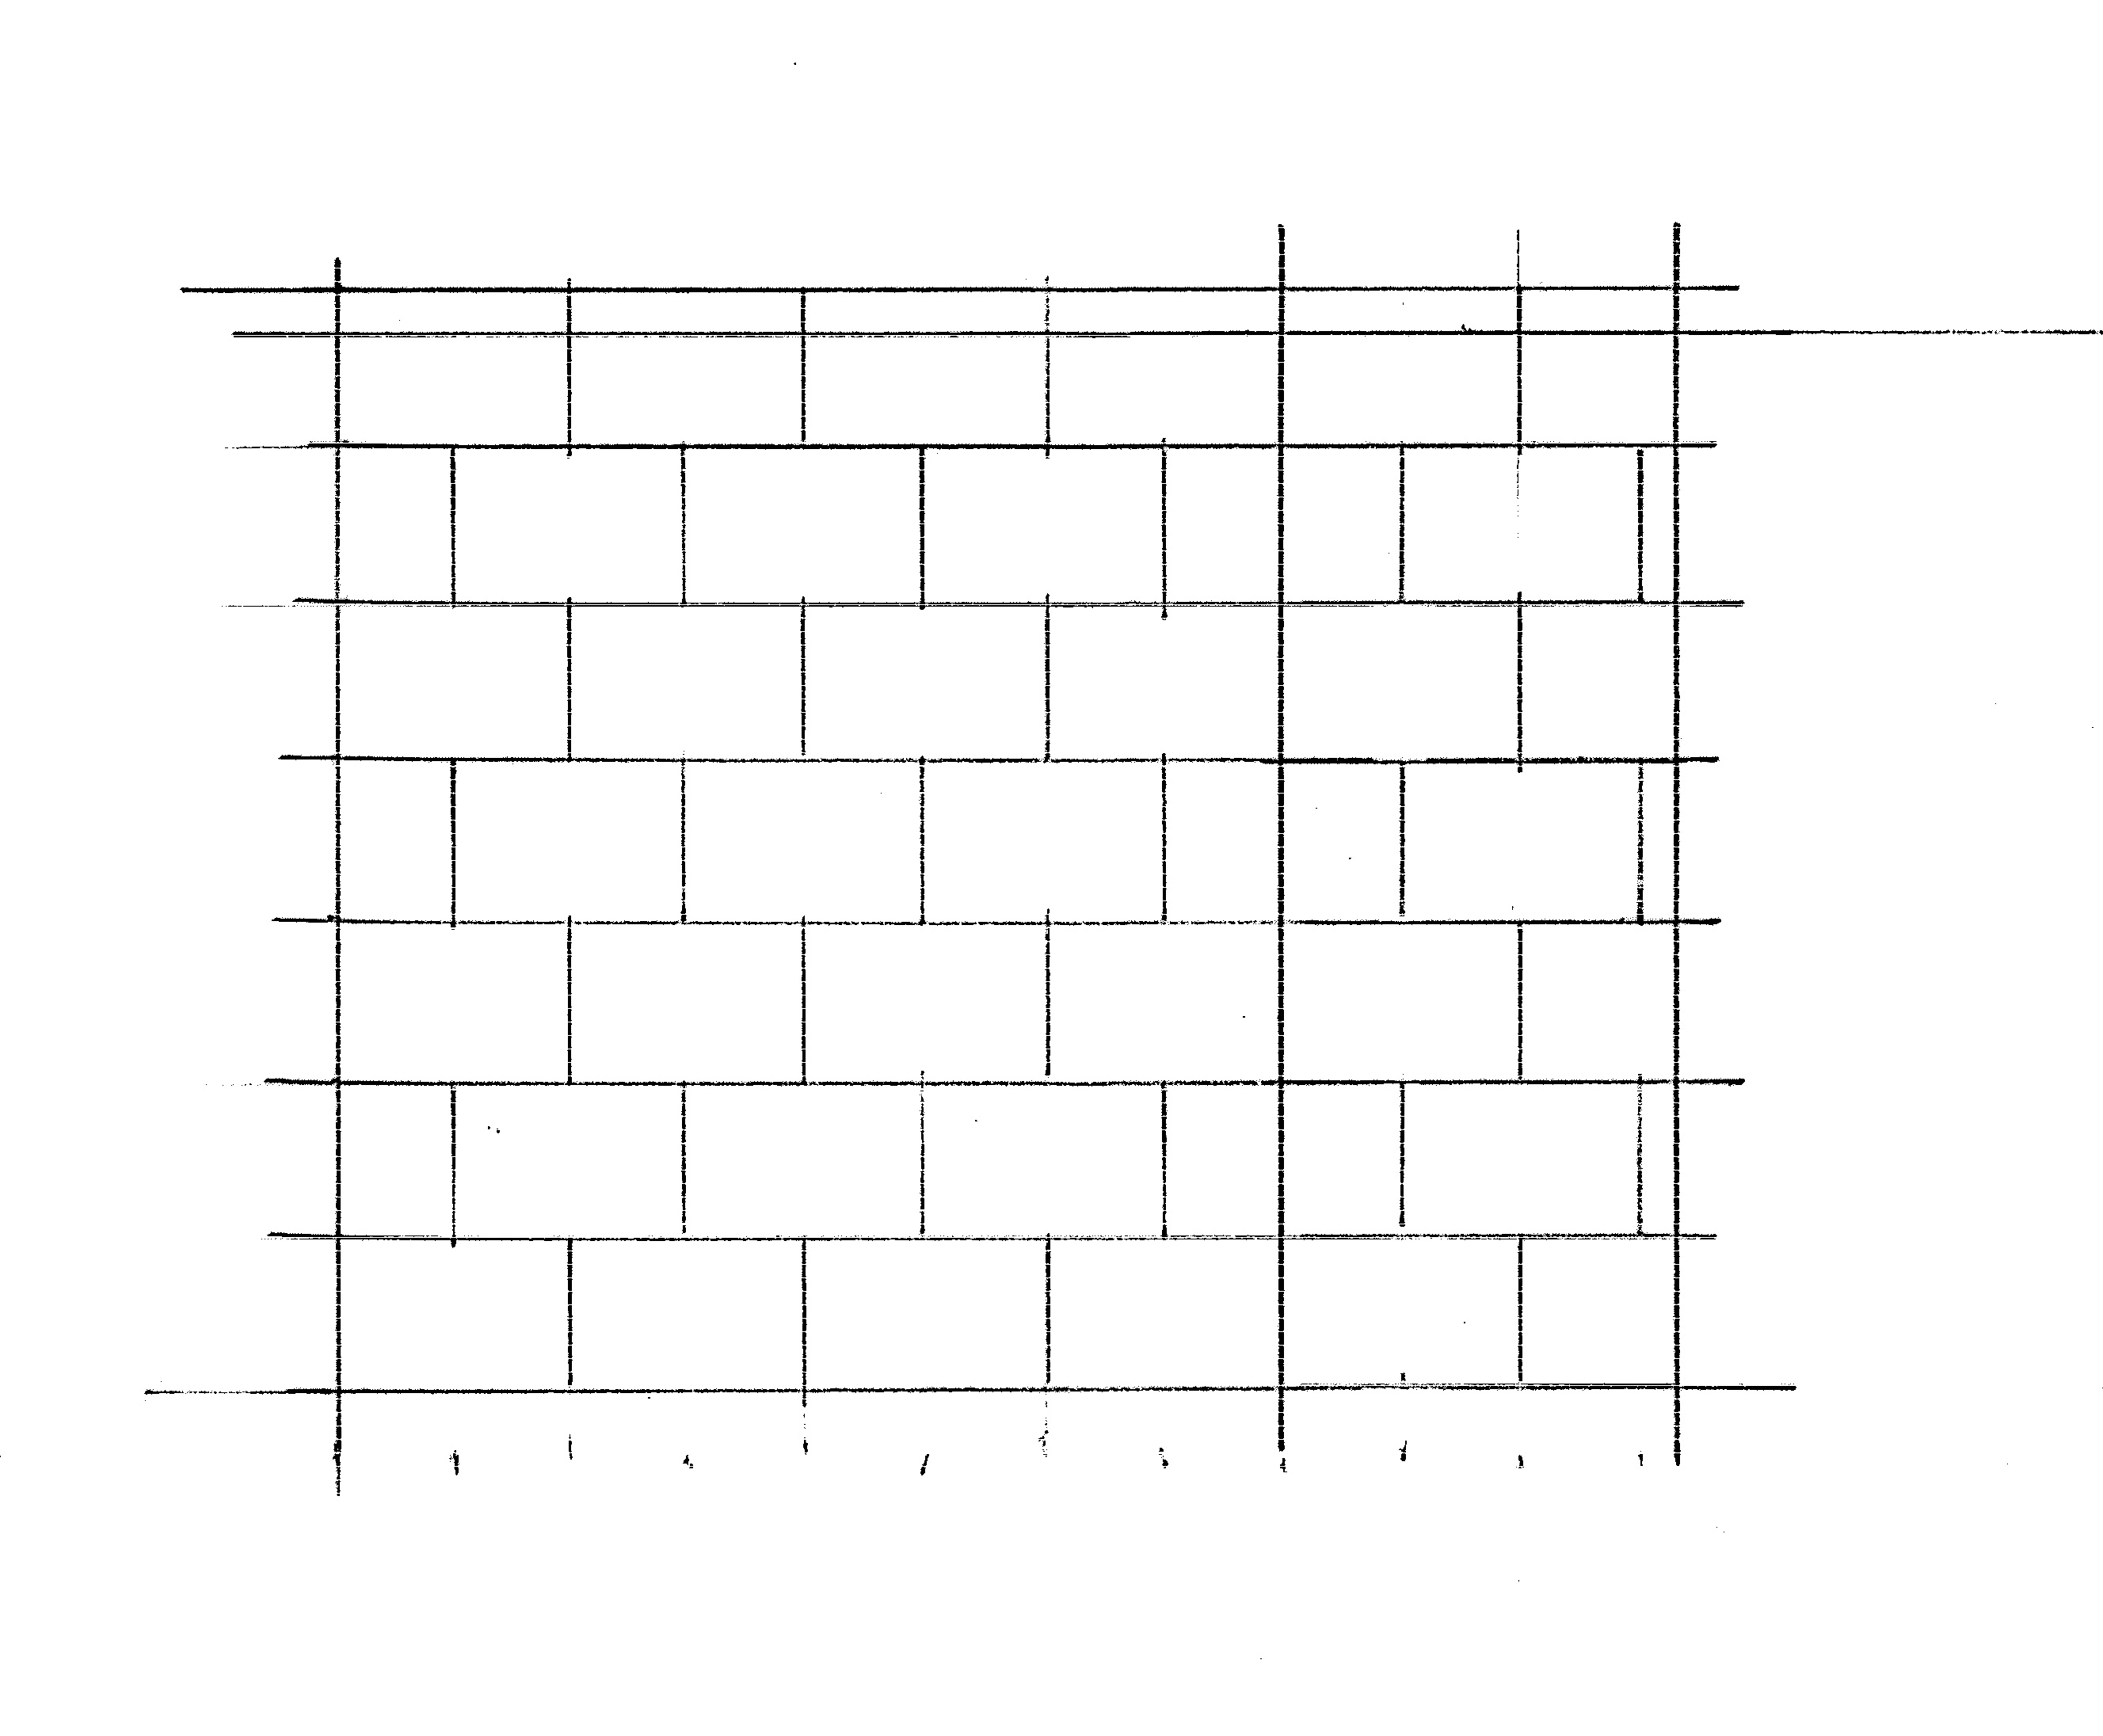 Elevations- Wall